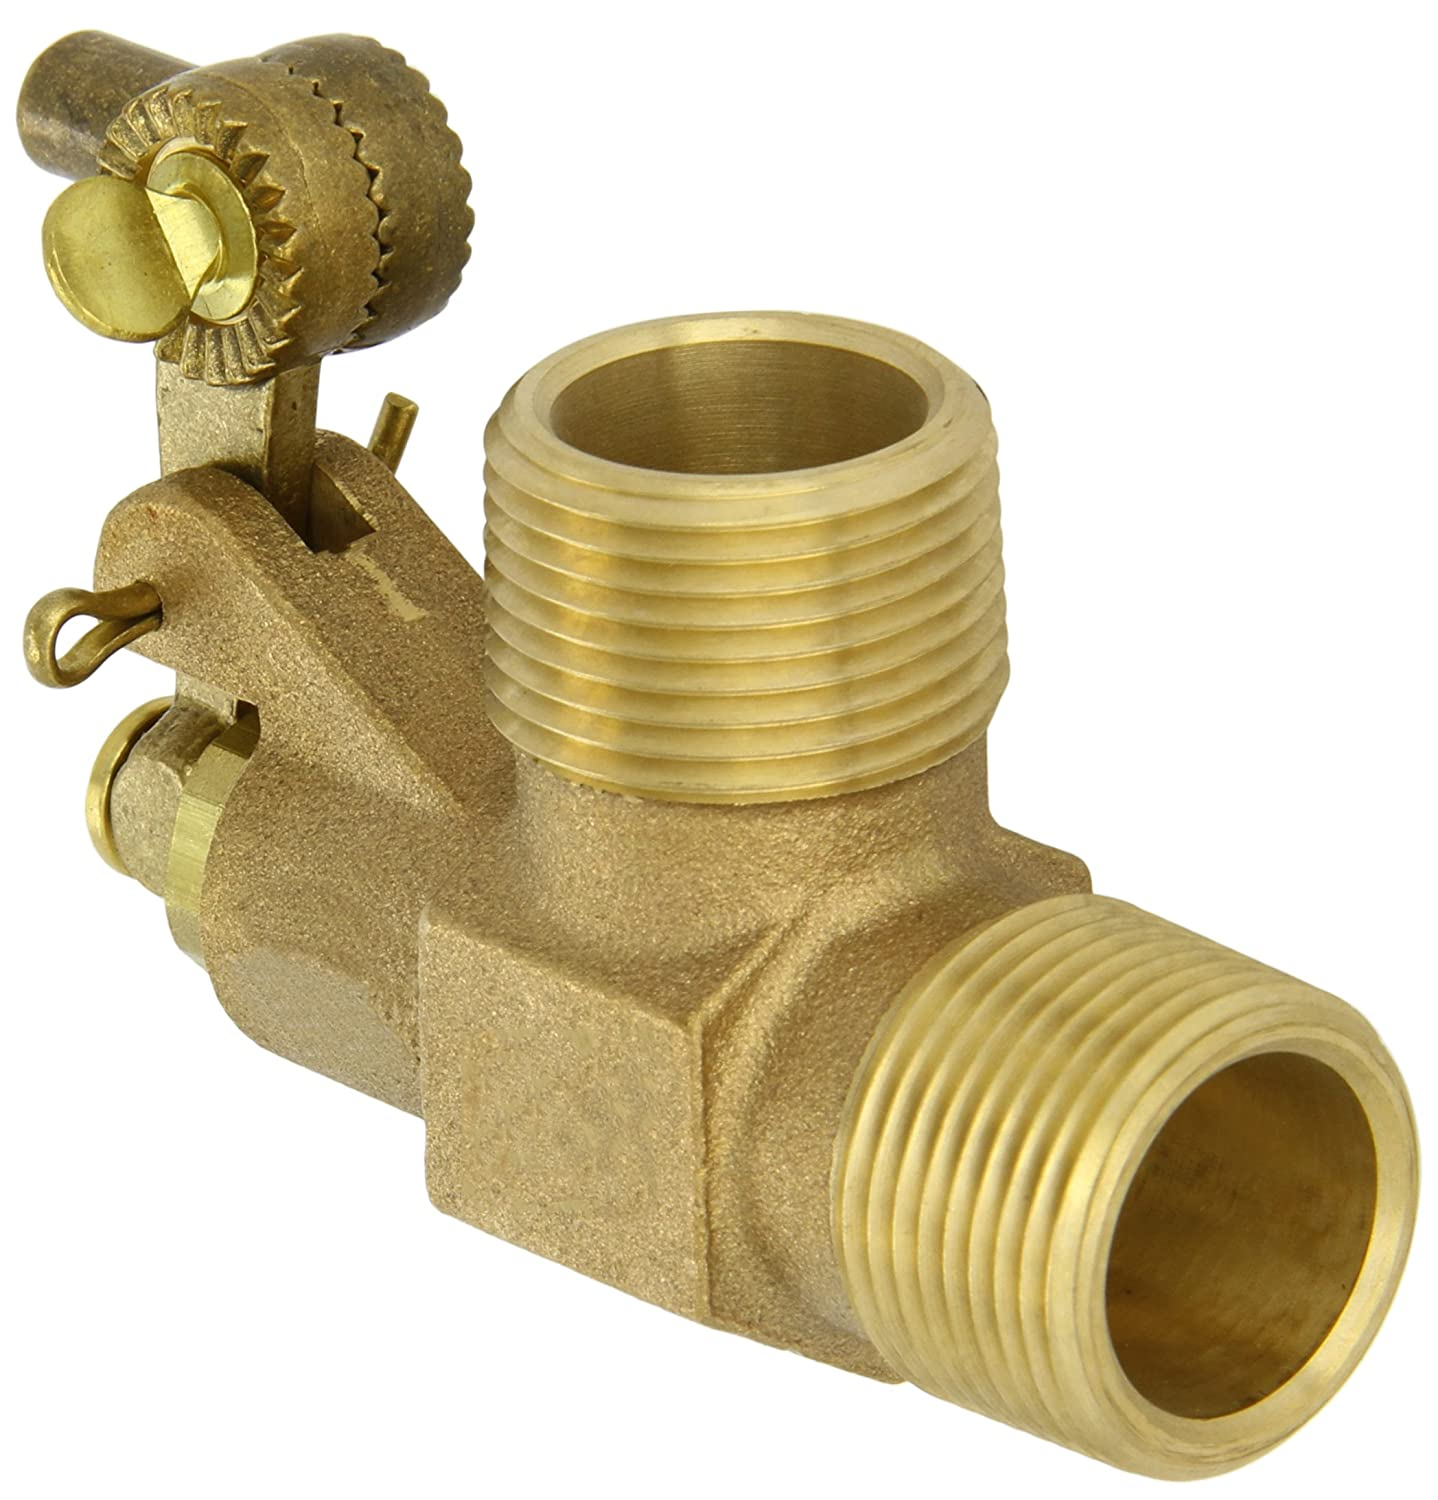 Robert Manufacturing R900 Series Bob Red Brass Float Valve with Fluted Plunger, 1' NPT Male Inlet x 1' NPT Male Outlet, 68.5 gpm at 85 psi Pressure 1 NPT Male Inlet x 1 NPT Male Outlet Control Devices